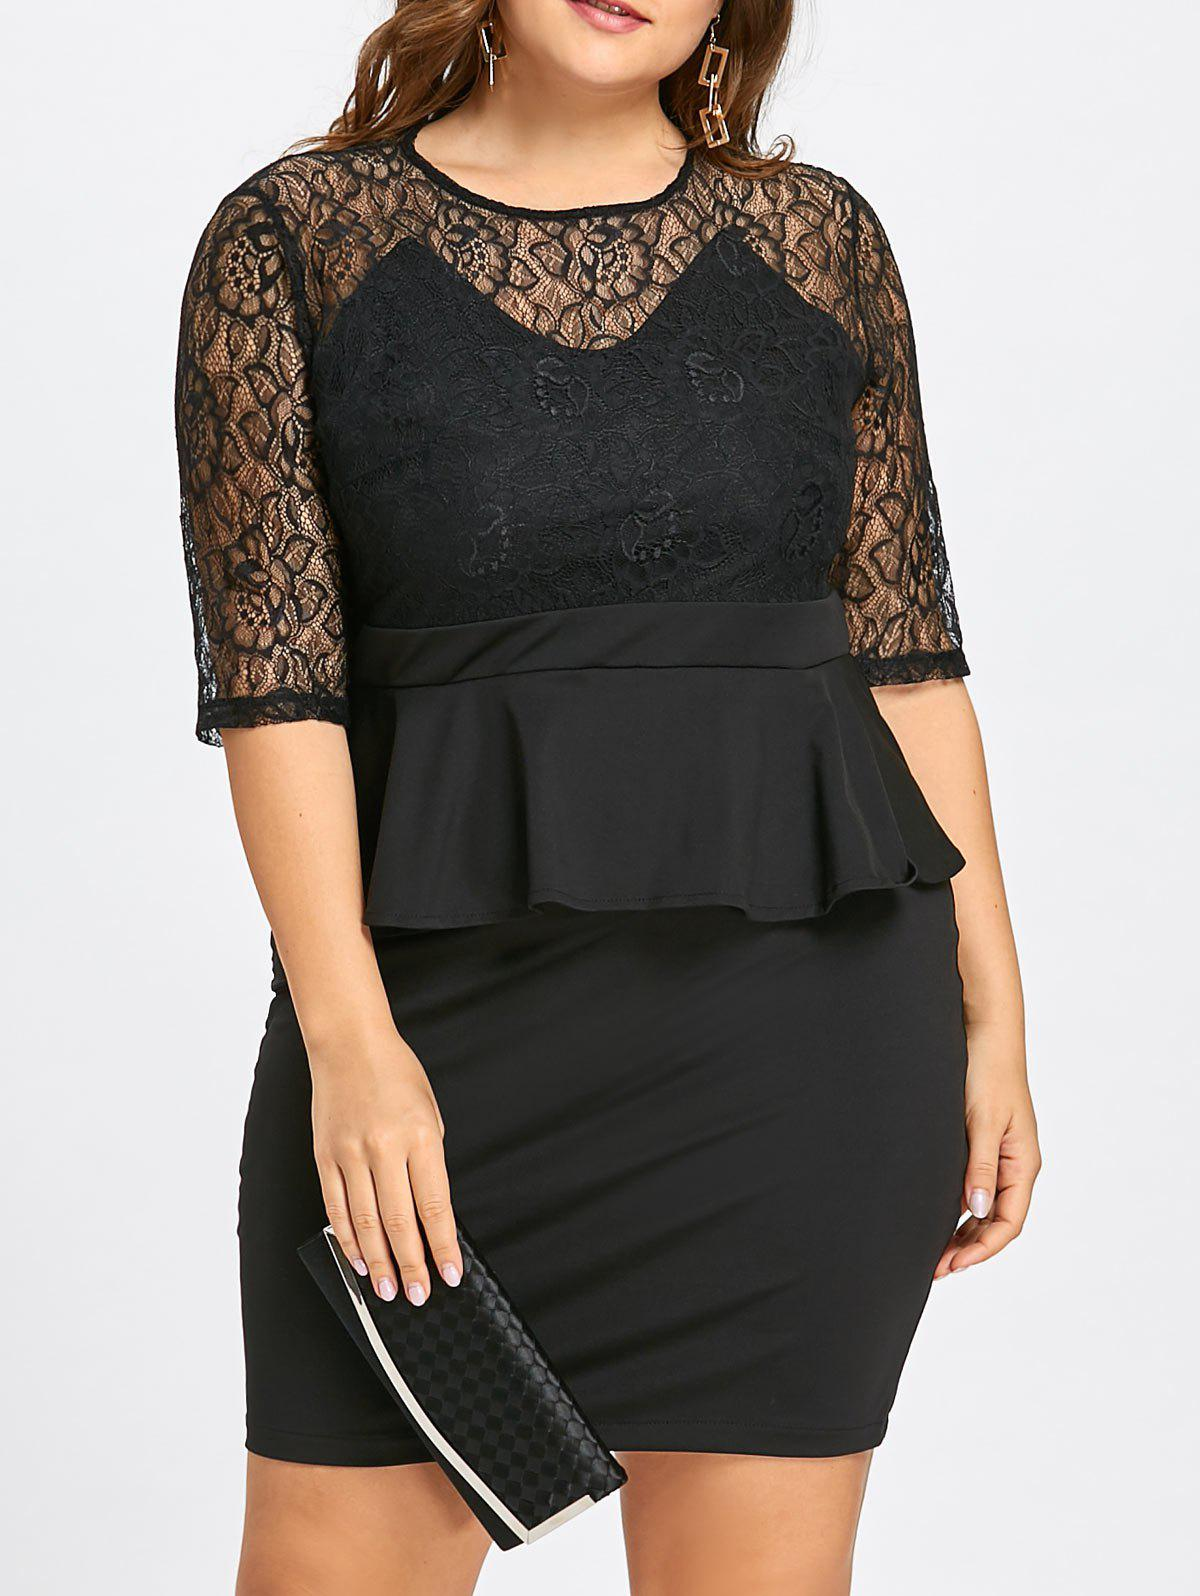 Plus Size Lace Insert Peplum Sheath Dress - BLACK 7XL